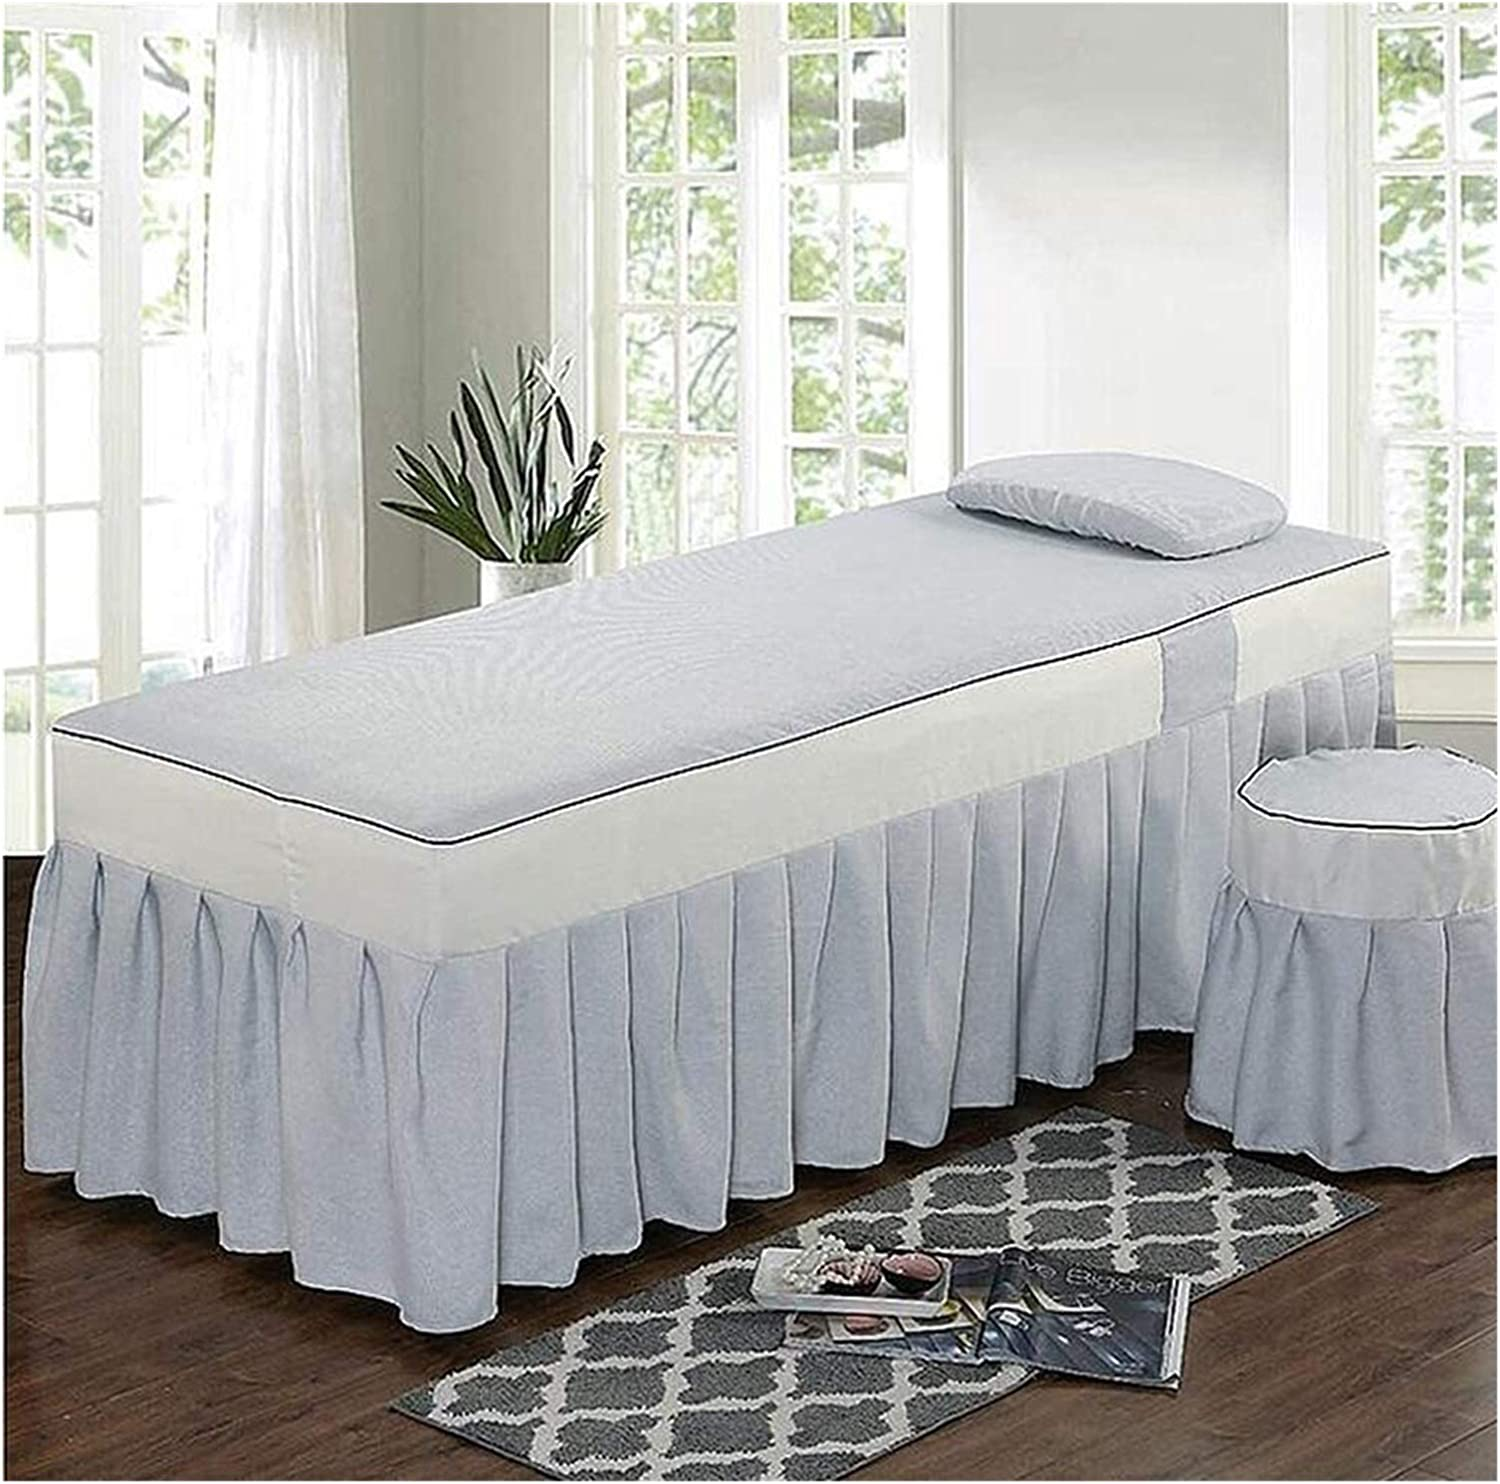 ZHANGYN Massage Table Sheet Sets Spa Bed OFFicial site Beauty Colo Cover Pure Max 72% OFF